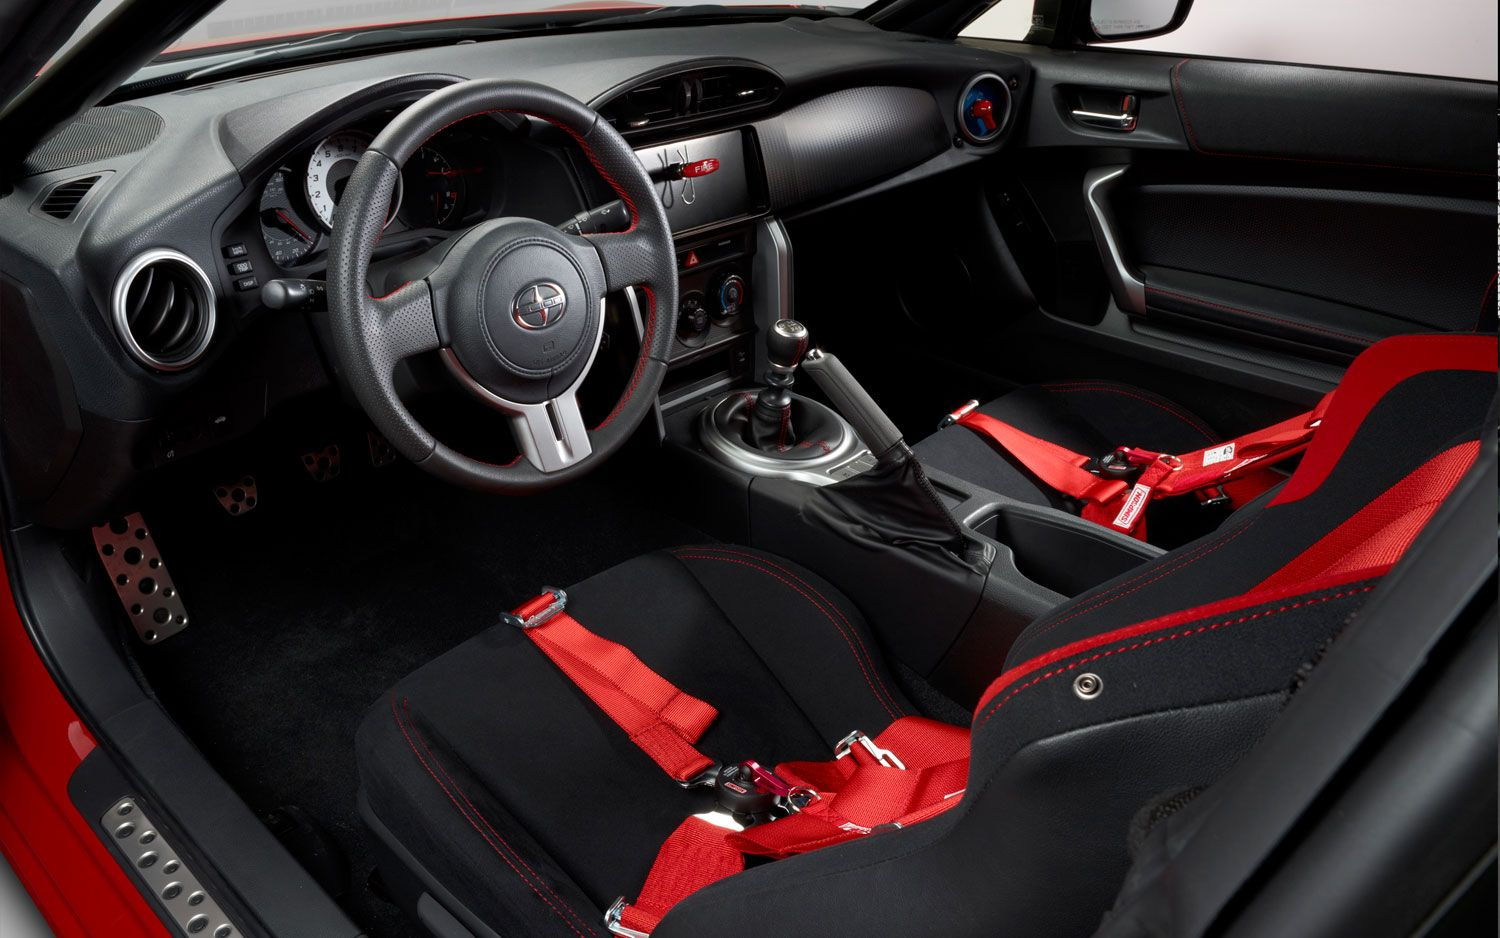 2017 Scion Fr S Toyota Pro Celebrity Race Car Interior Steering Wheel Photo On March 8